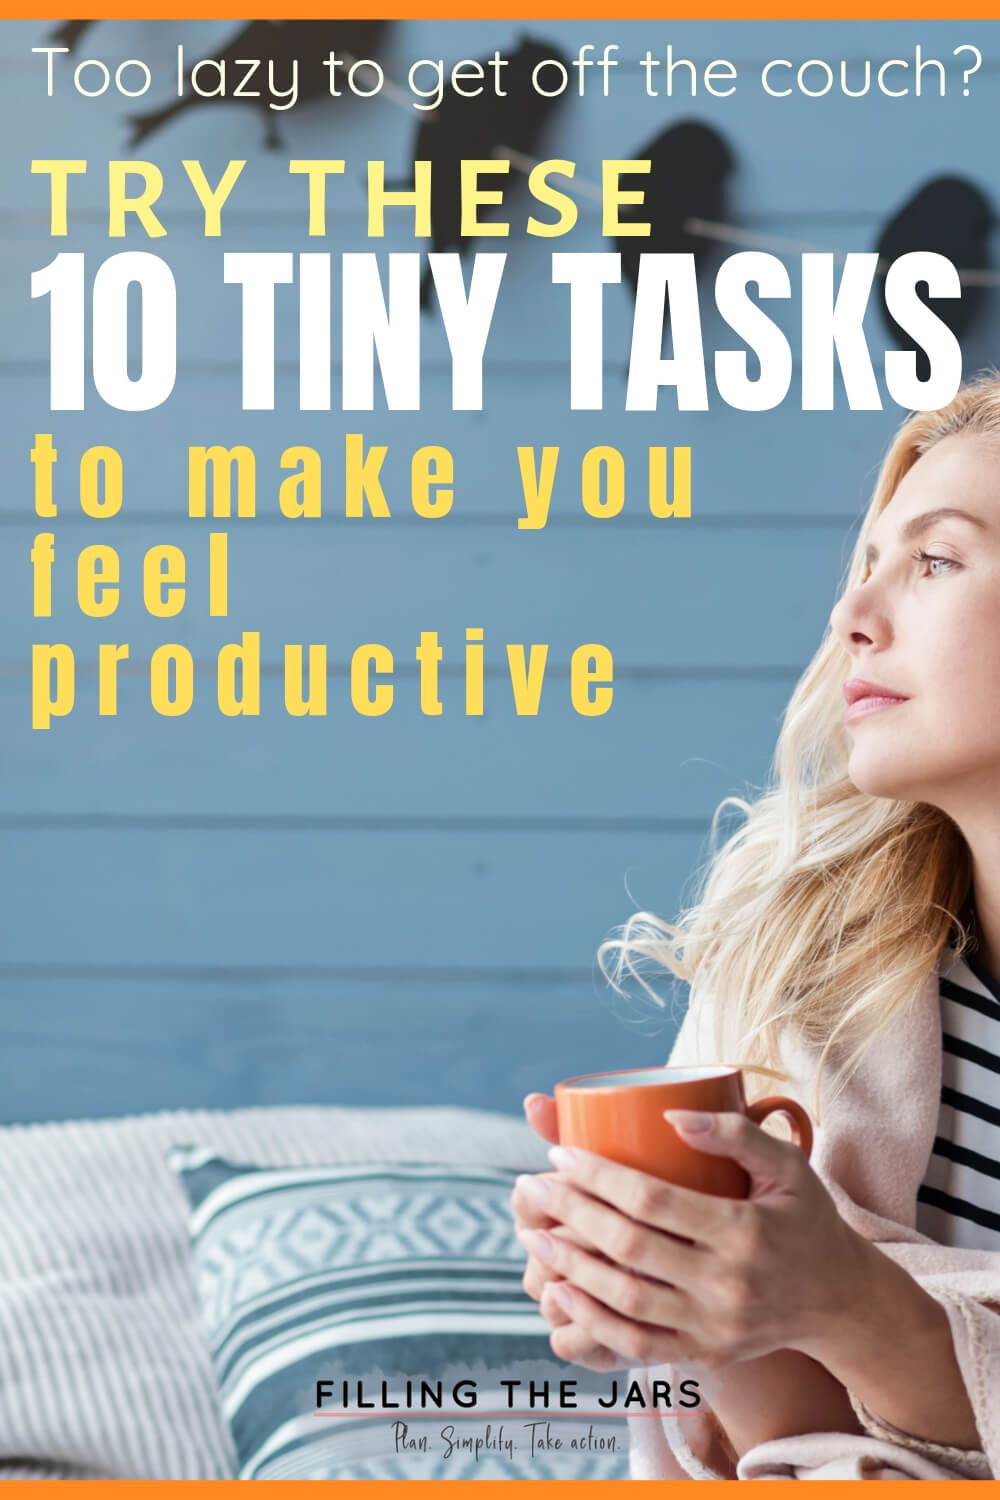 blonde woman holding orange mug sitting on couch against blue wall with text overlay 10 tiny tasks to feel productive